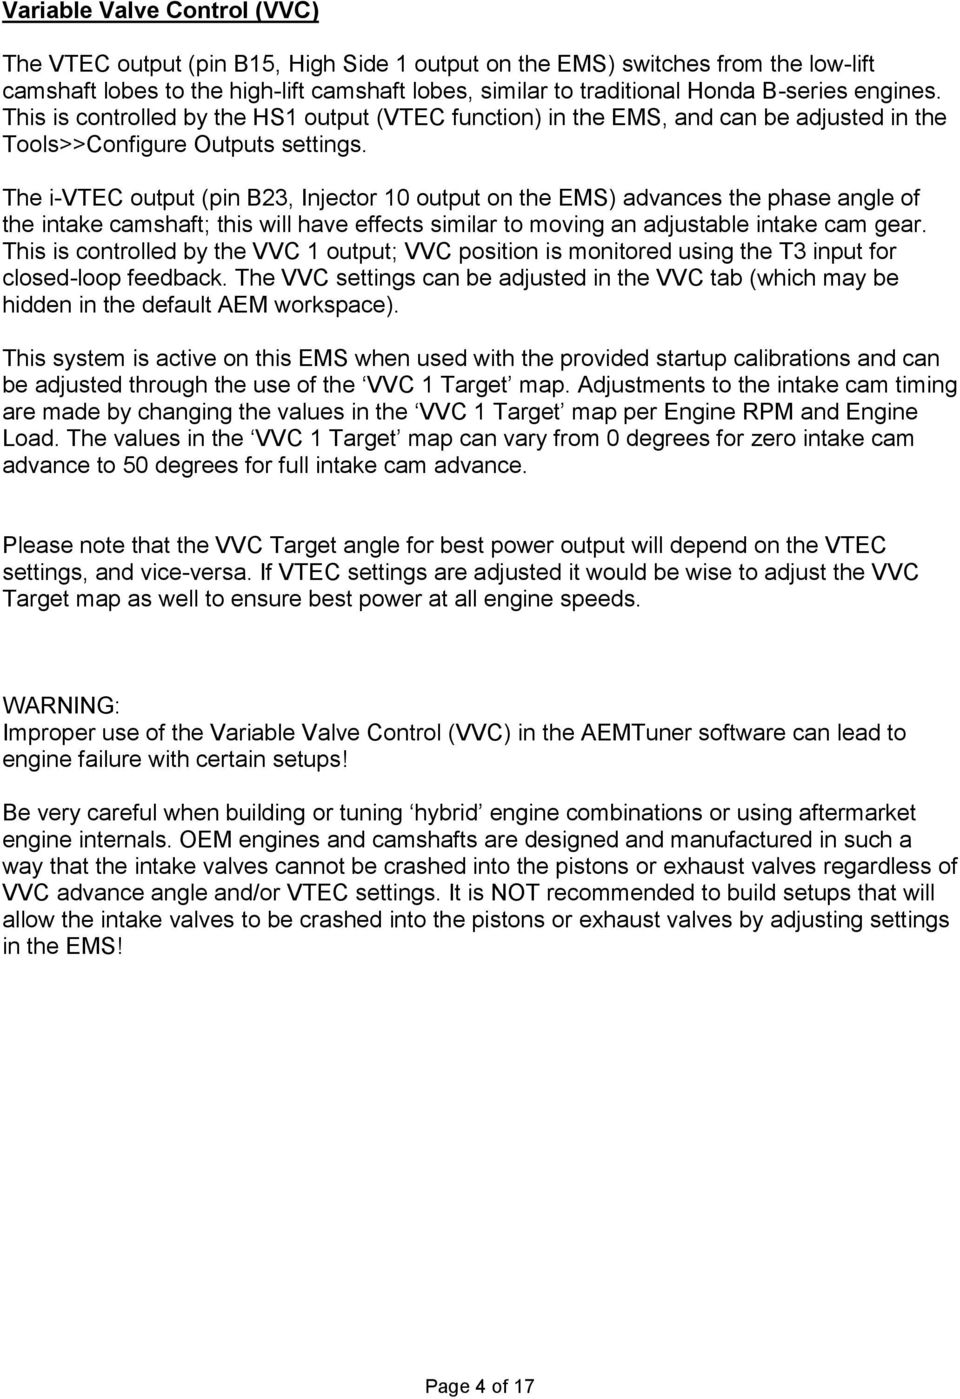 hight resolution of the i vtec output pin b23 injector 10 output on the ems